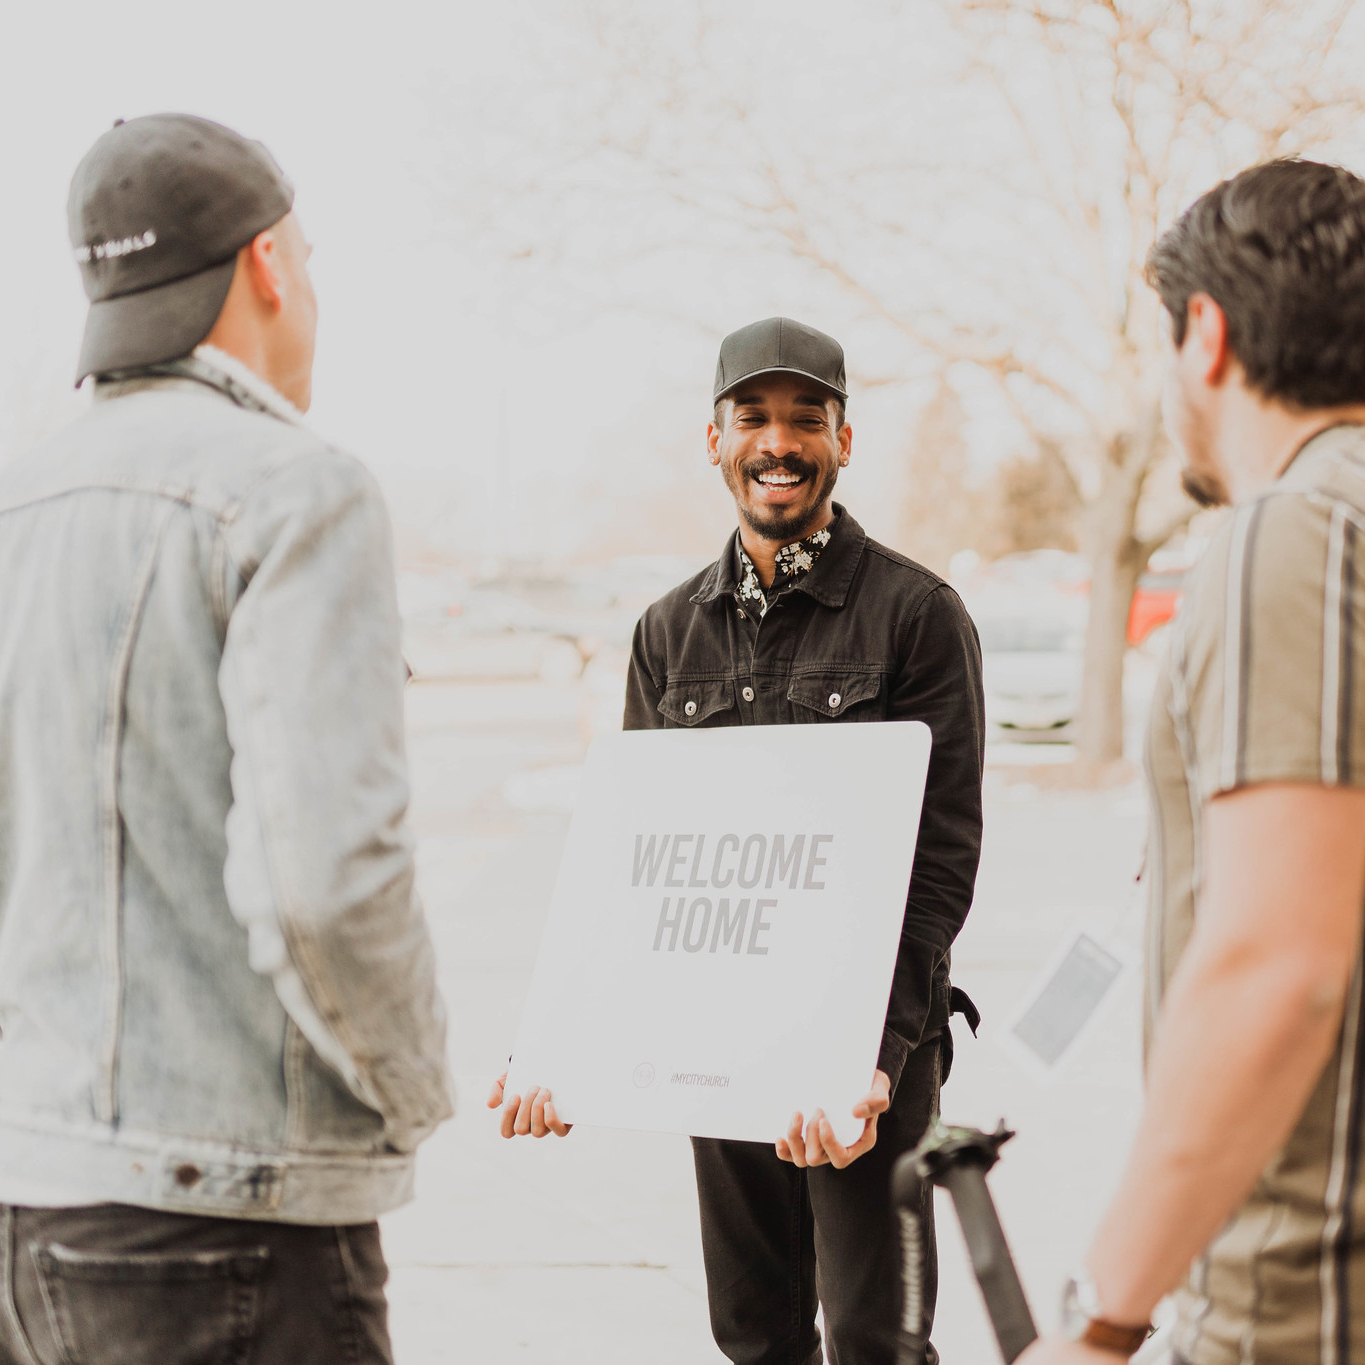 man holding welcome home sign greeting people at an Omaha church